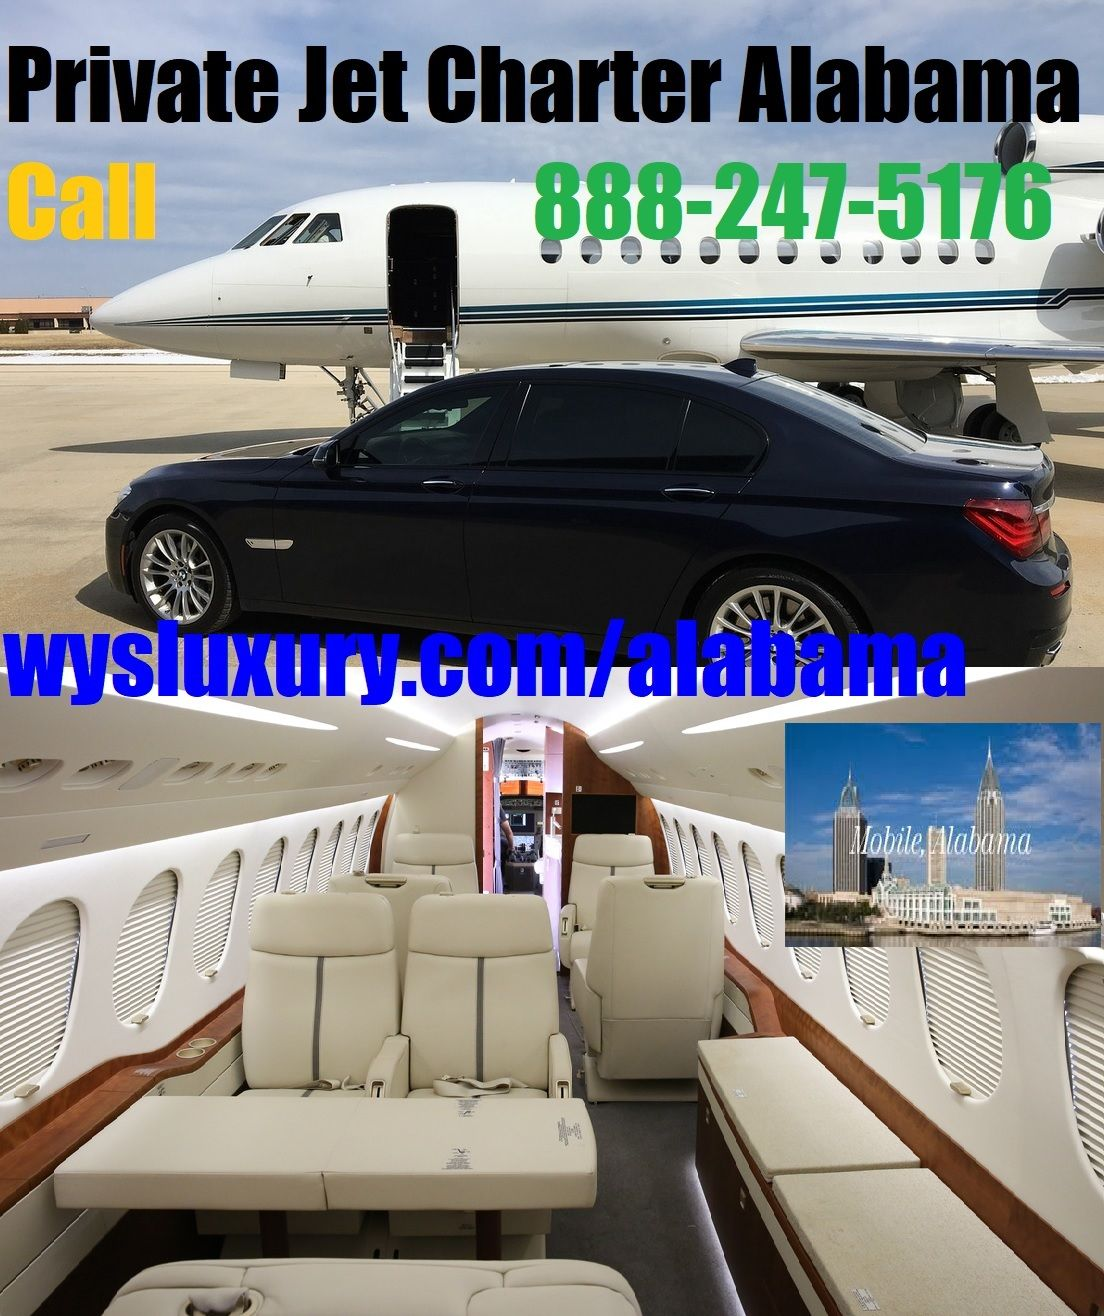 Private Jet Charter Flight Mobile Dothan Enterprise Al Airplane Rental Private Jet Luxury Helicopter Luxury Private Jets